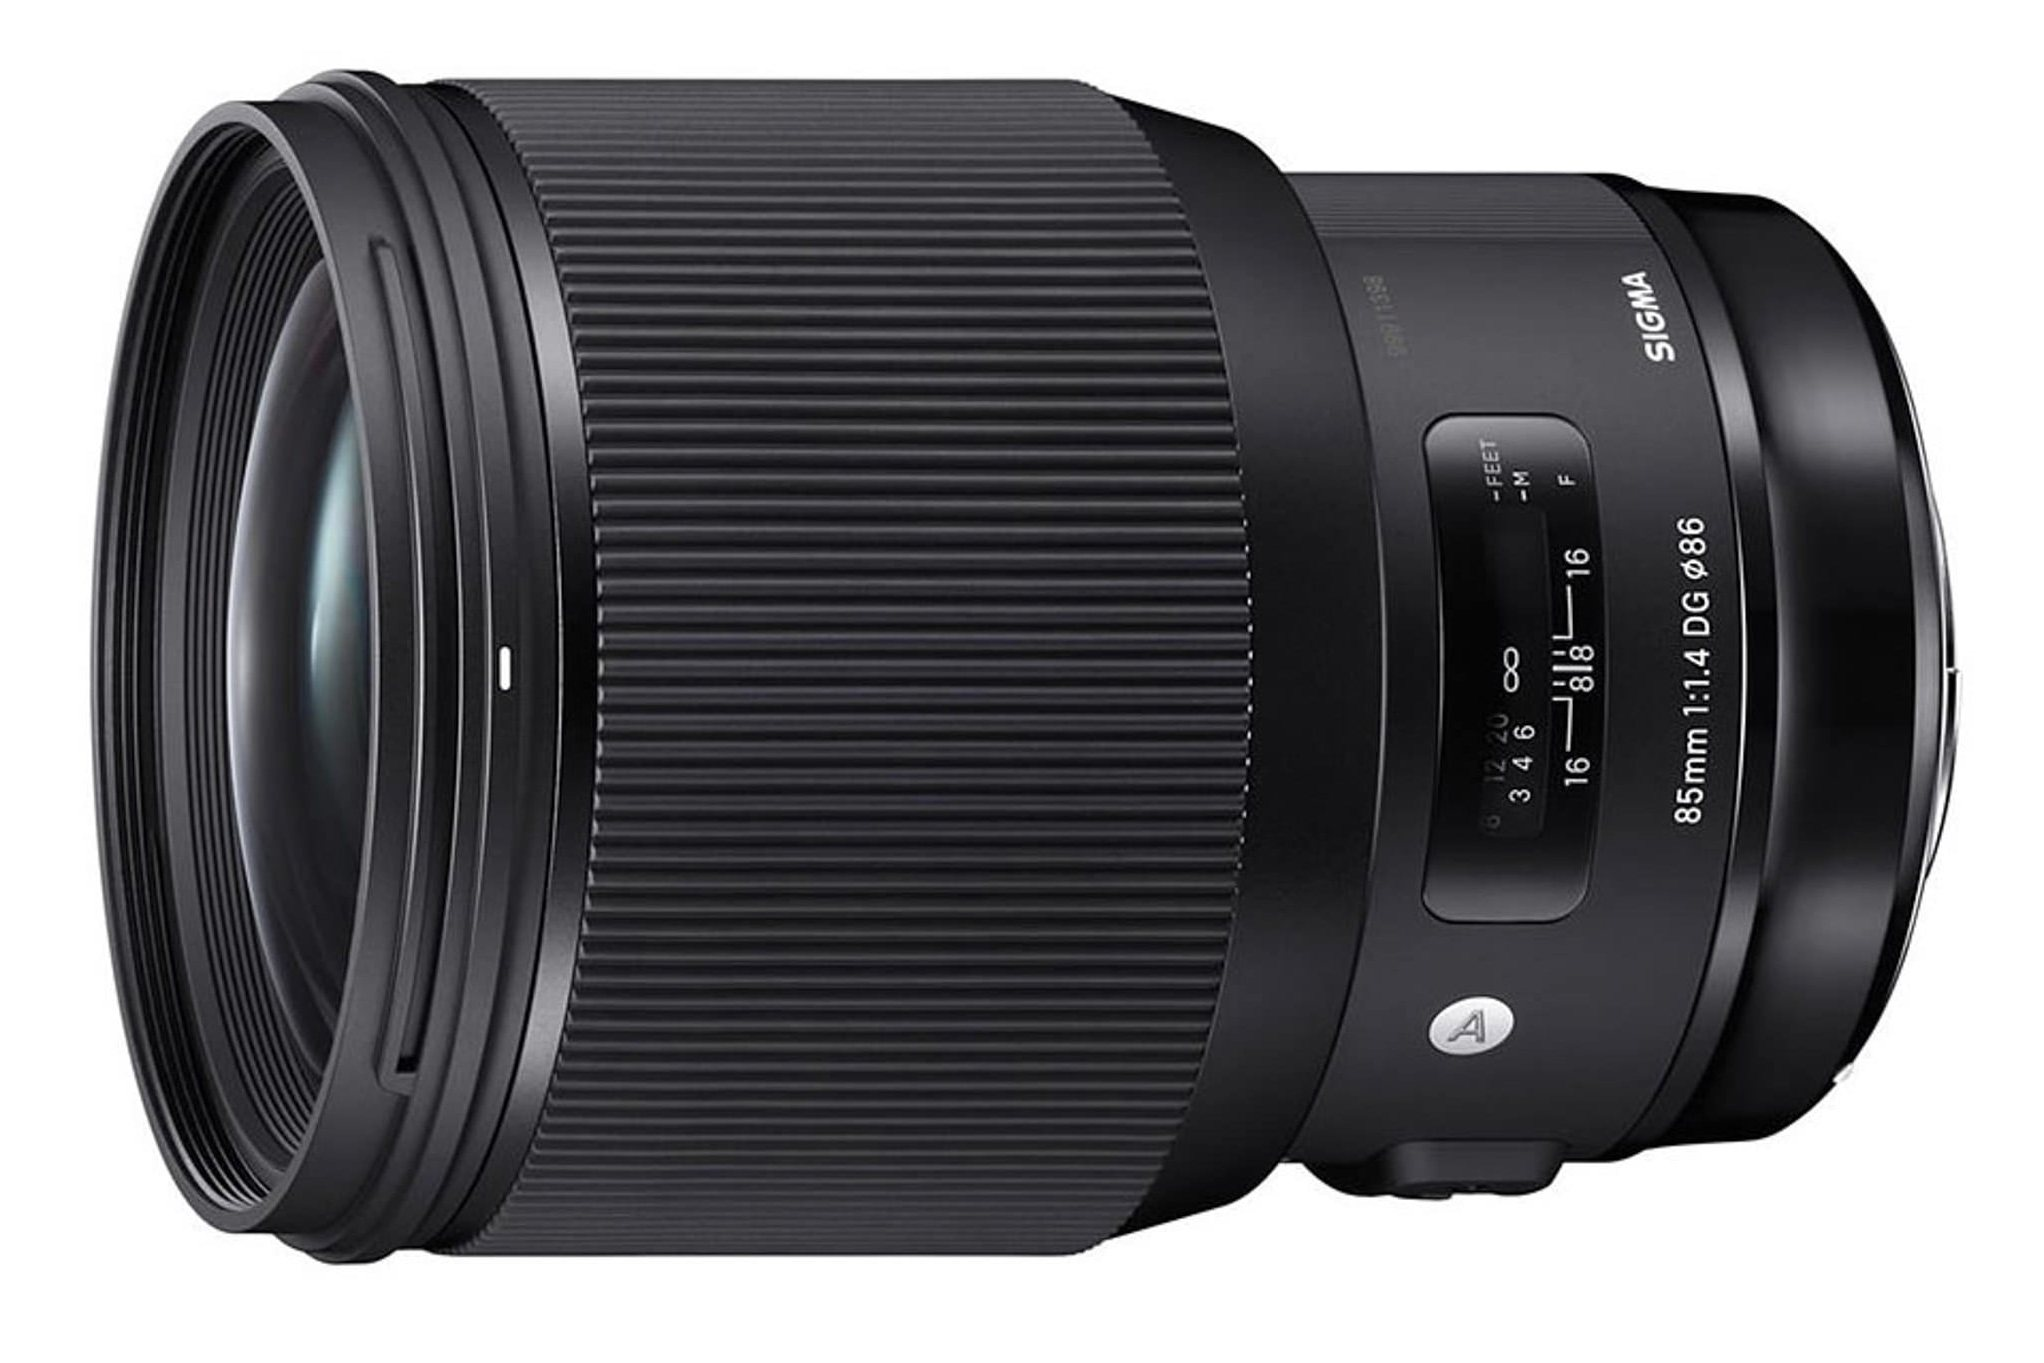 Sigma 85mm F1.4 ART review vs Wedding Photography 21